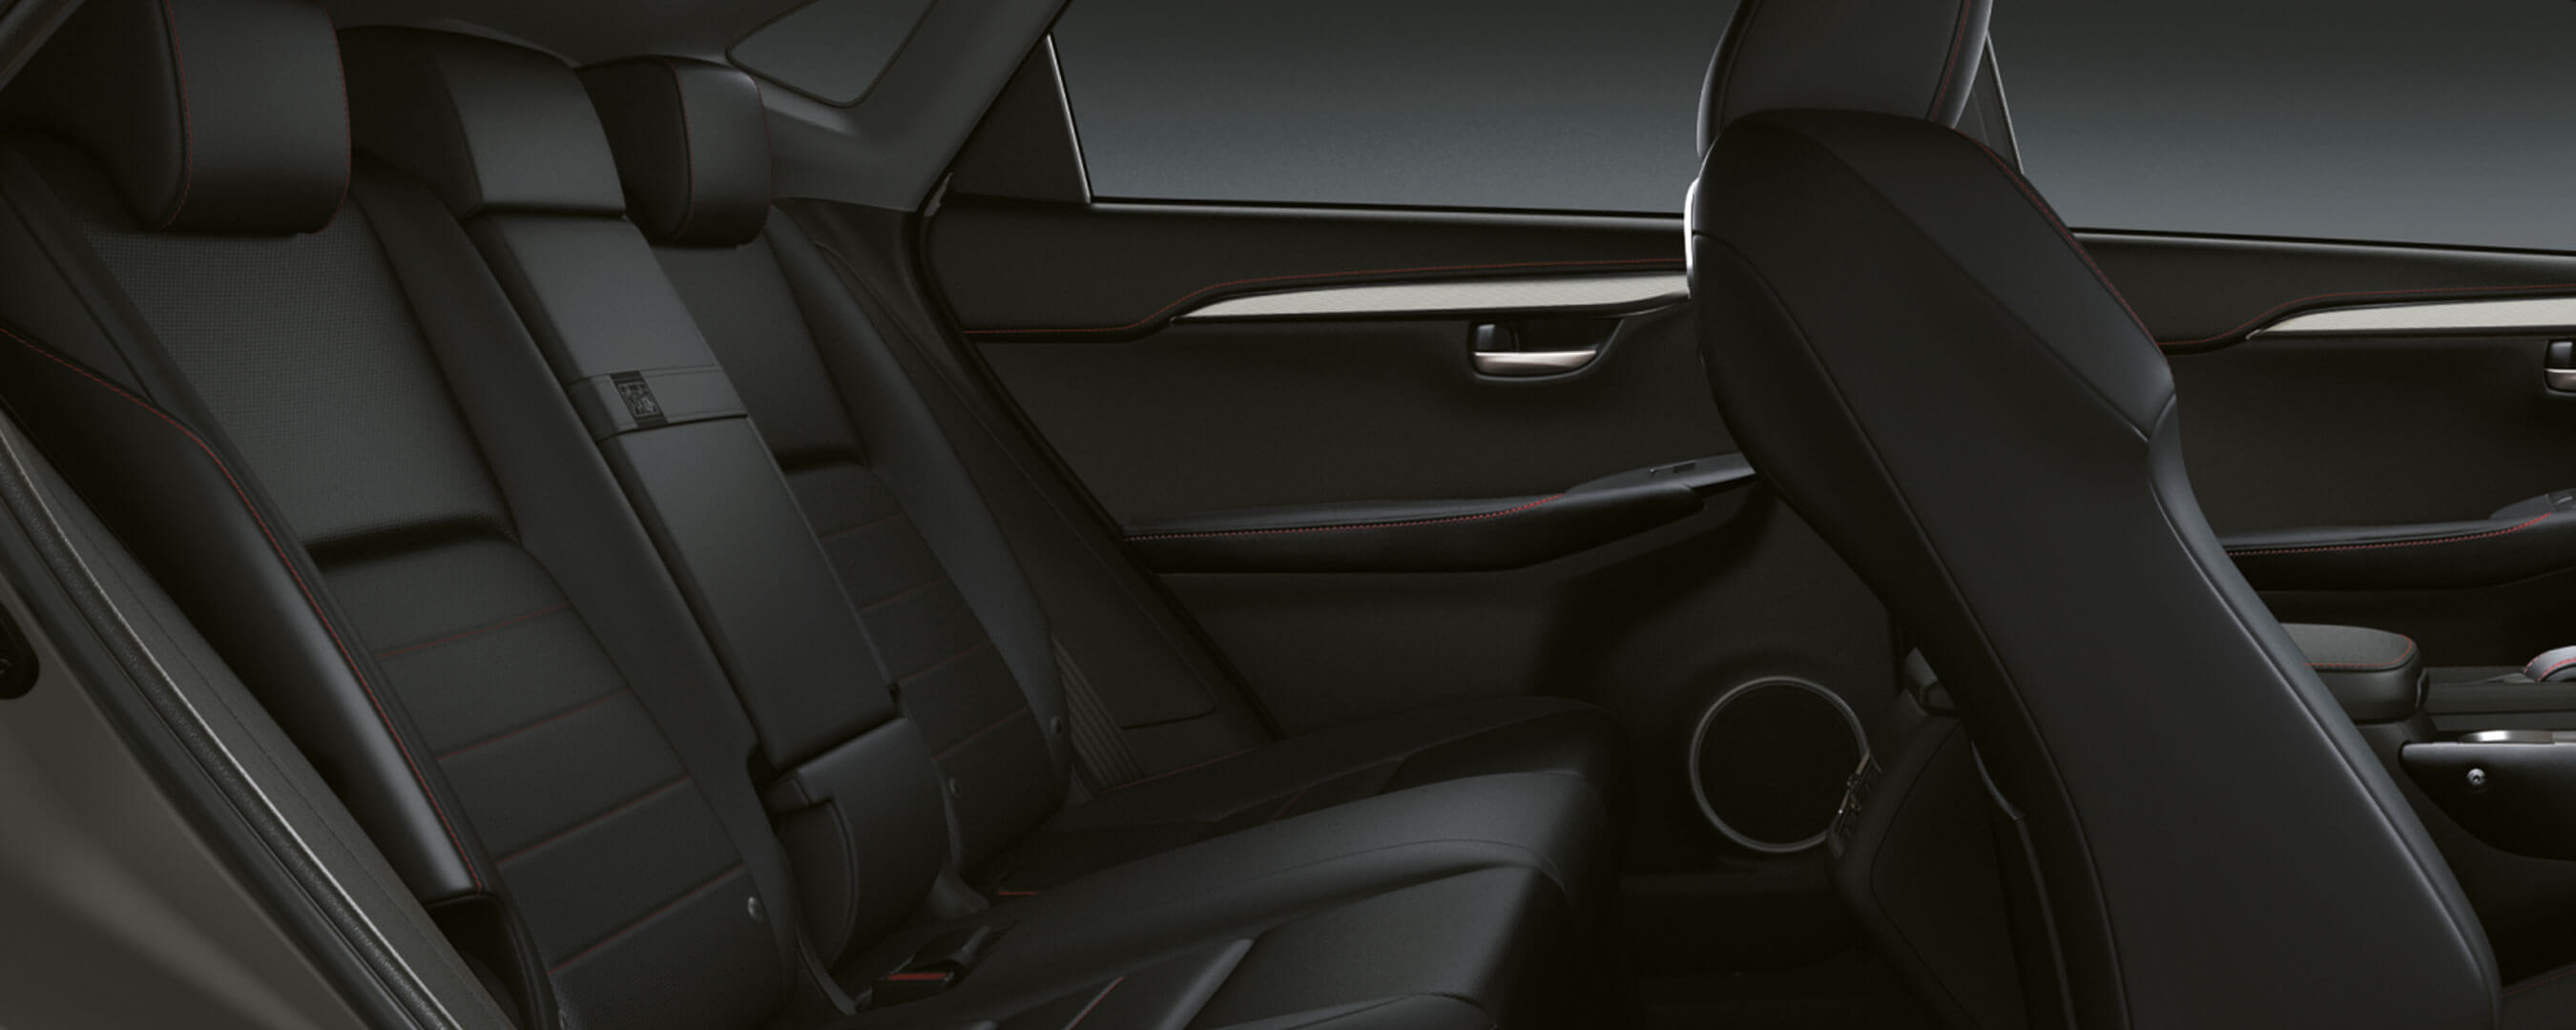 2017 lexus nx 300h experience hero interior back